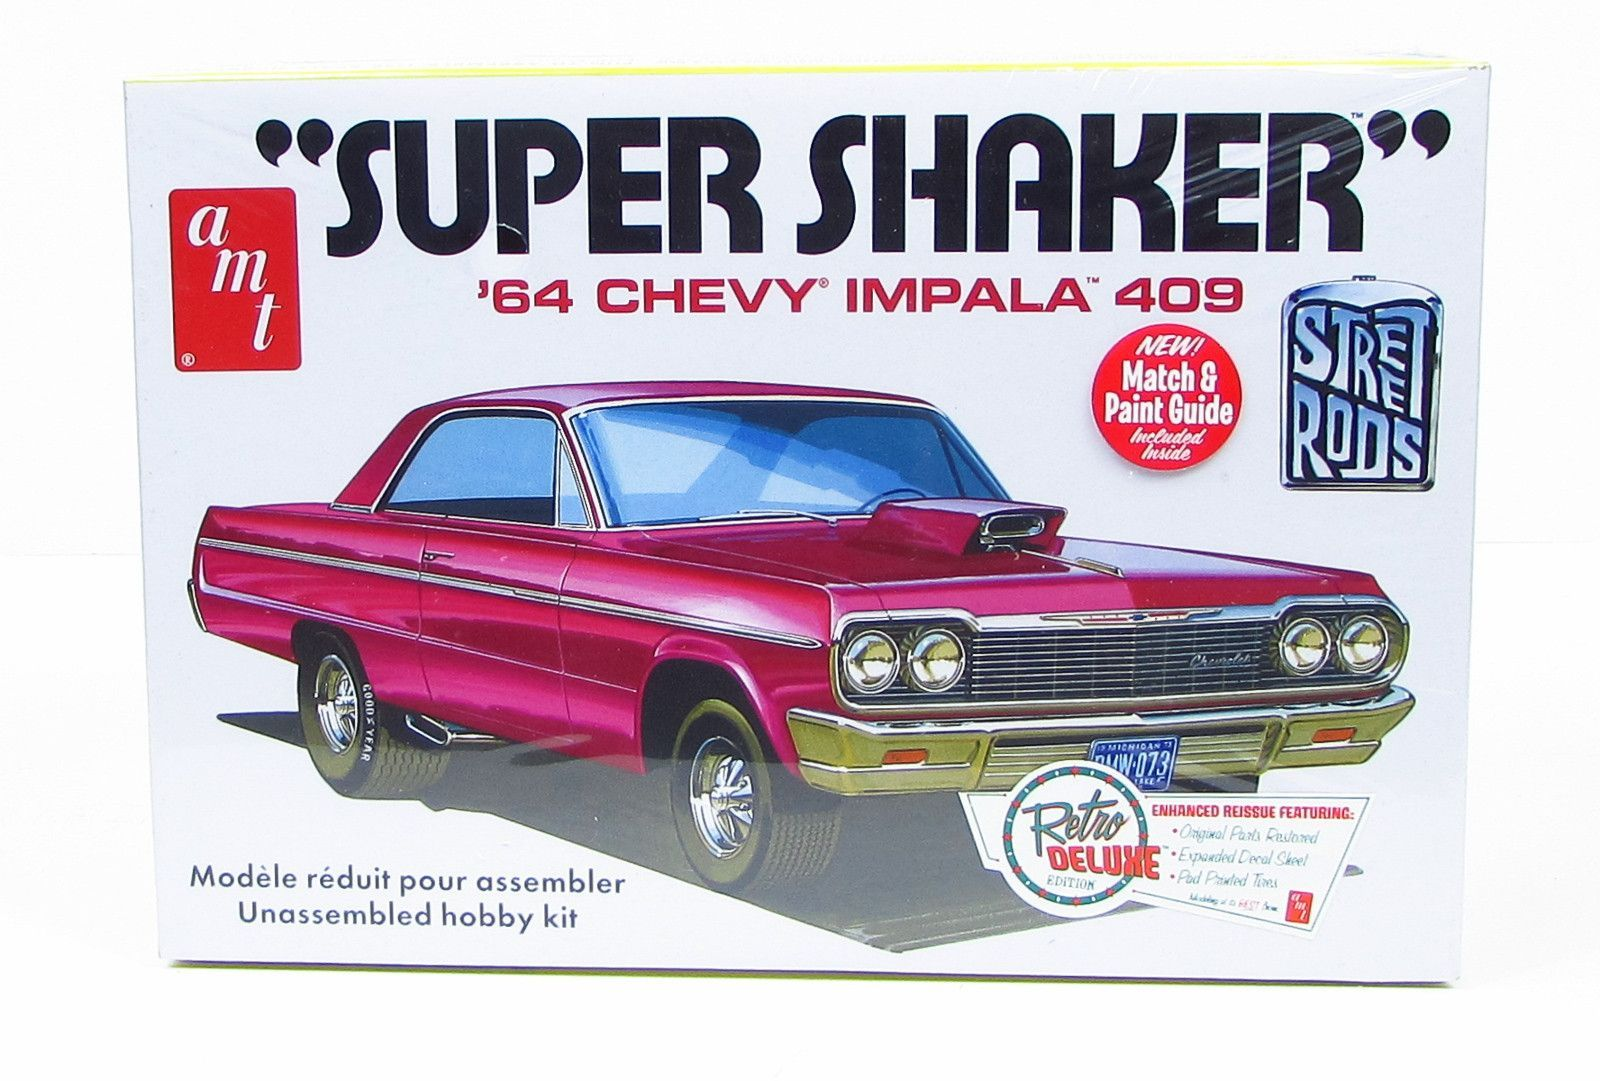 Little red wagon funny car pictures car canyon - 1964 Chevy Impala 409 Super Shaker Amt 917 1 25 Model Car Kit